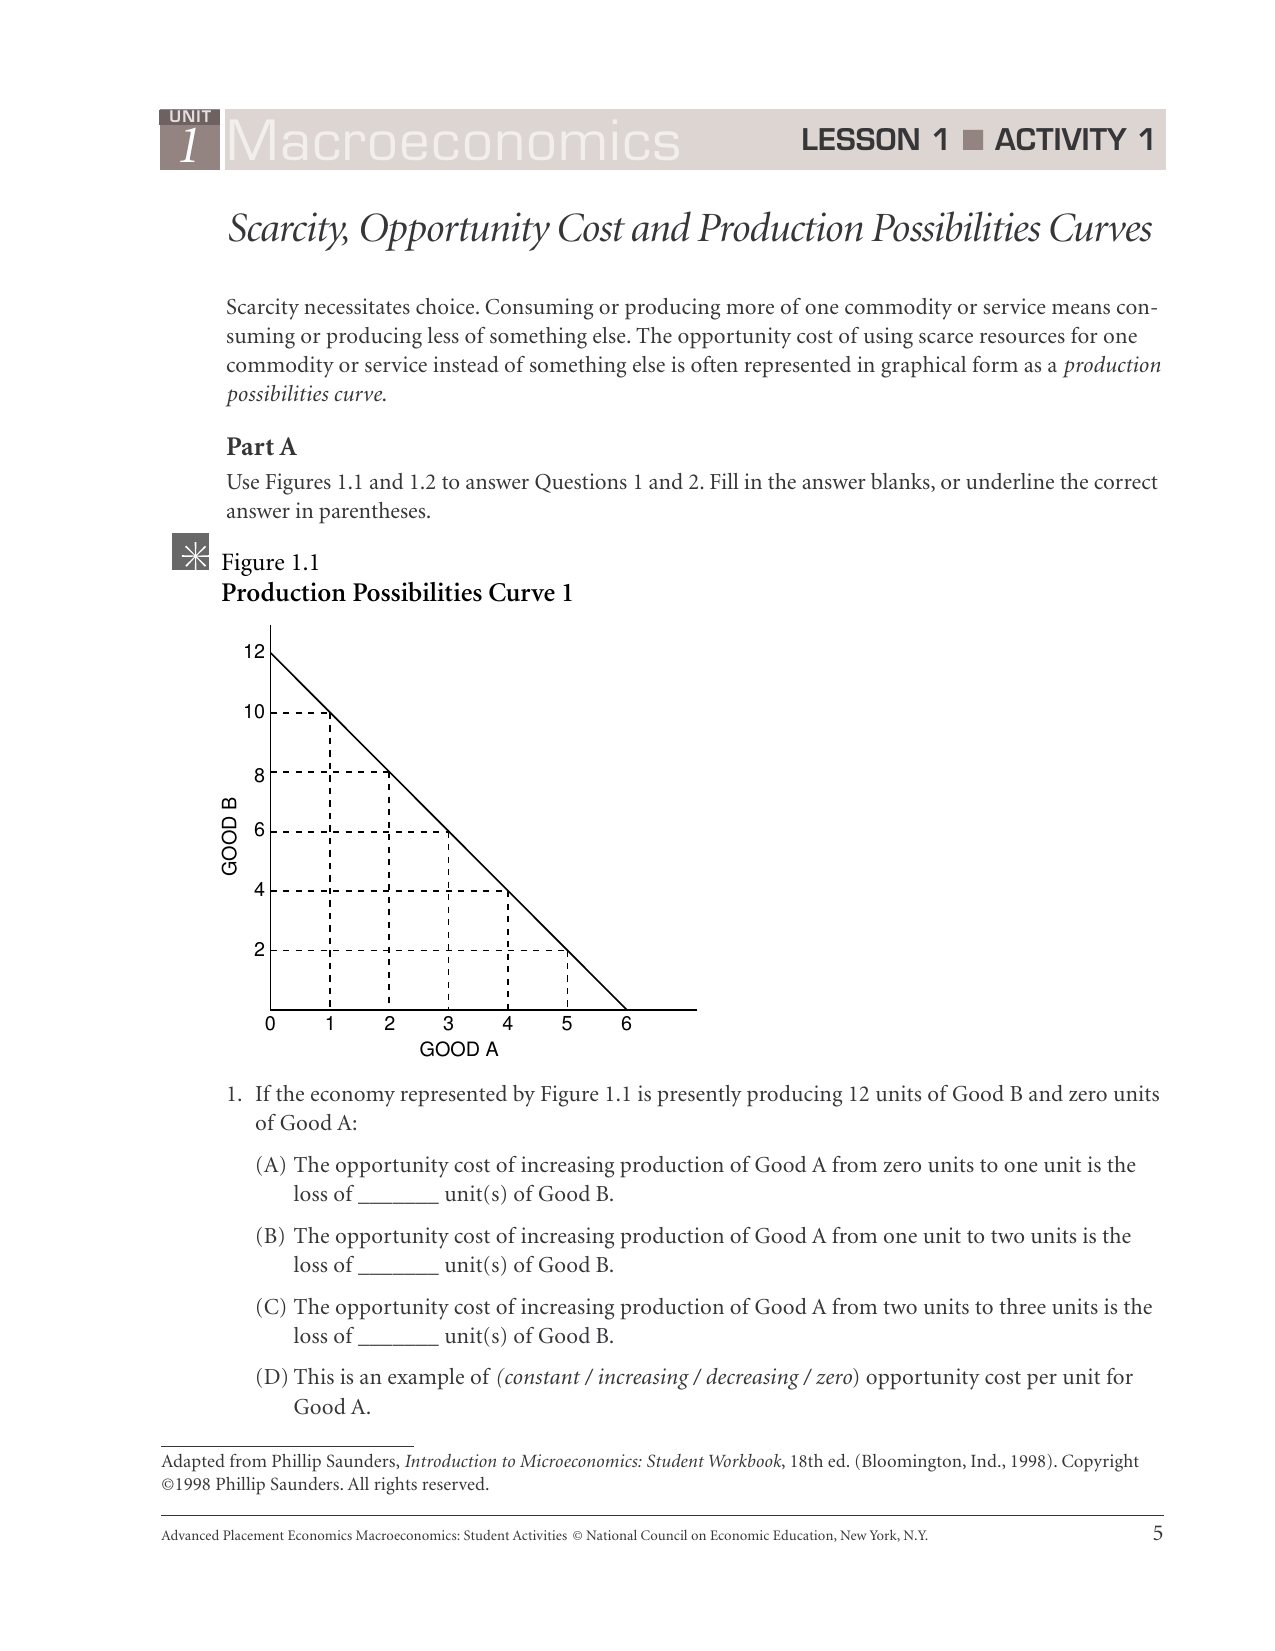 Opportunity Cost Worksheet Answers